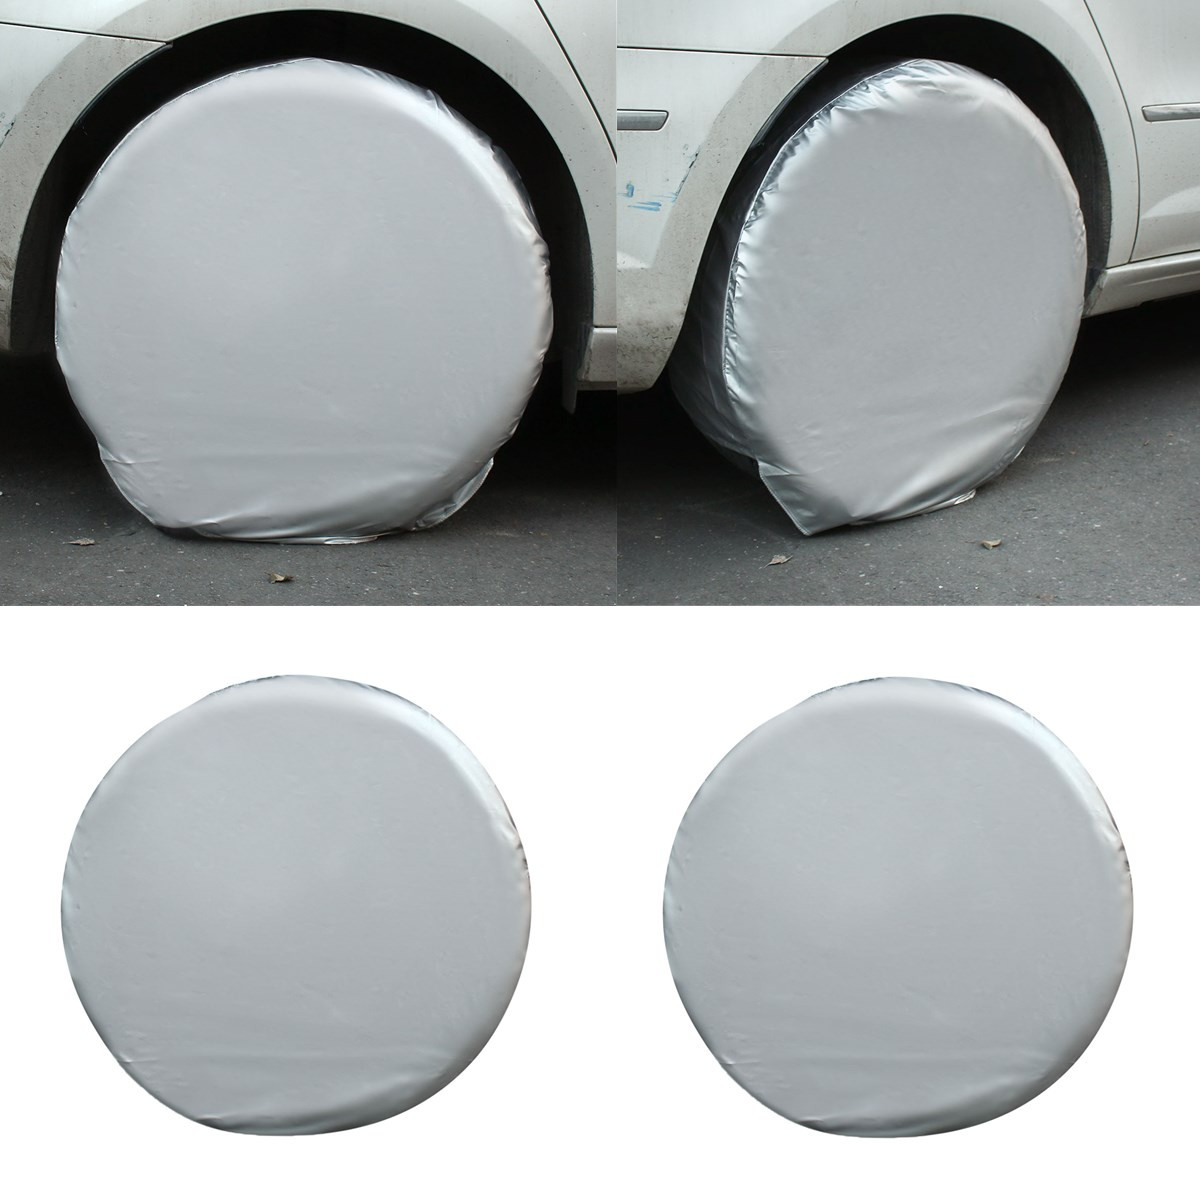 Groovy Us 12 99 4Pcs Set 27 29 Car Auto Spare Wheels Tire Tyre Cover Heavy Car Waterproof Tire Cover For Rv Truck Trailer Motorhome In Tire Accessories Download Free Architecture Designs Xaembritishbridgeorg